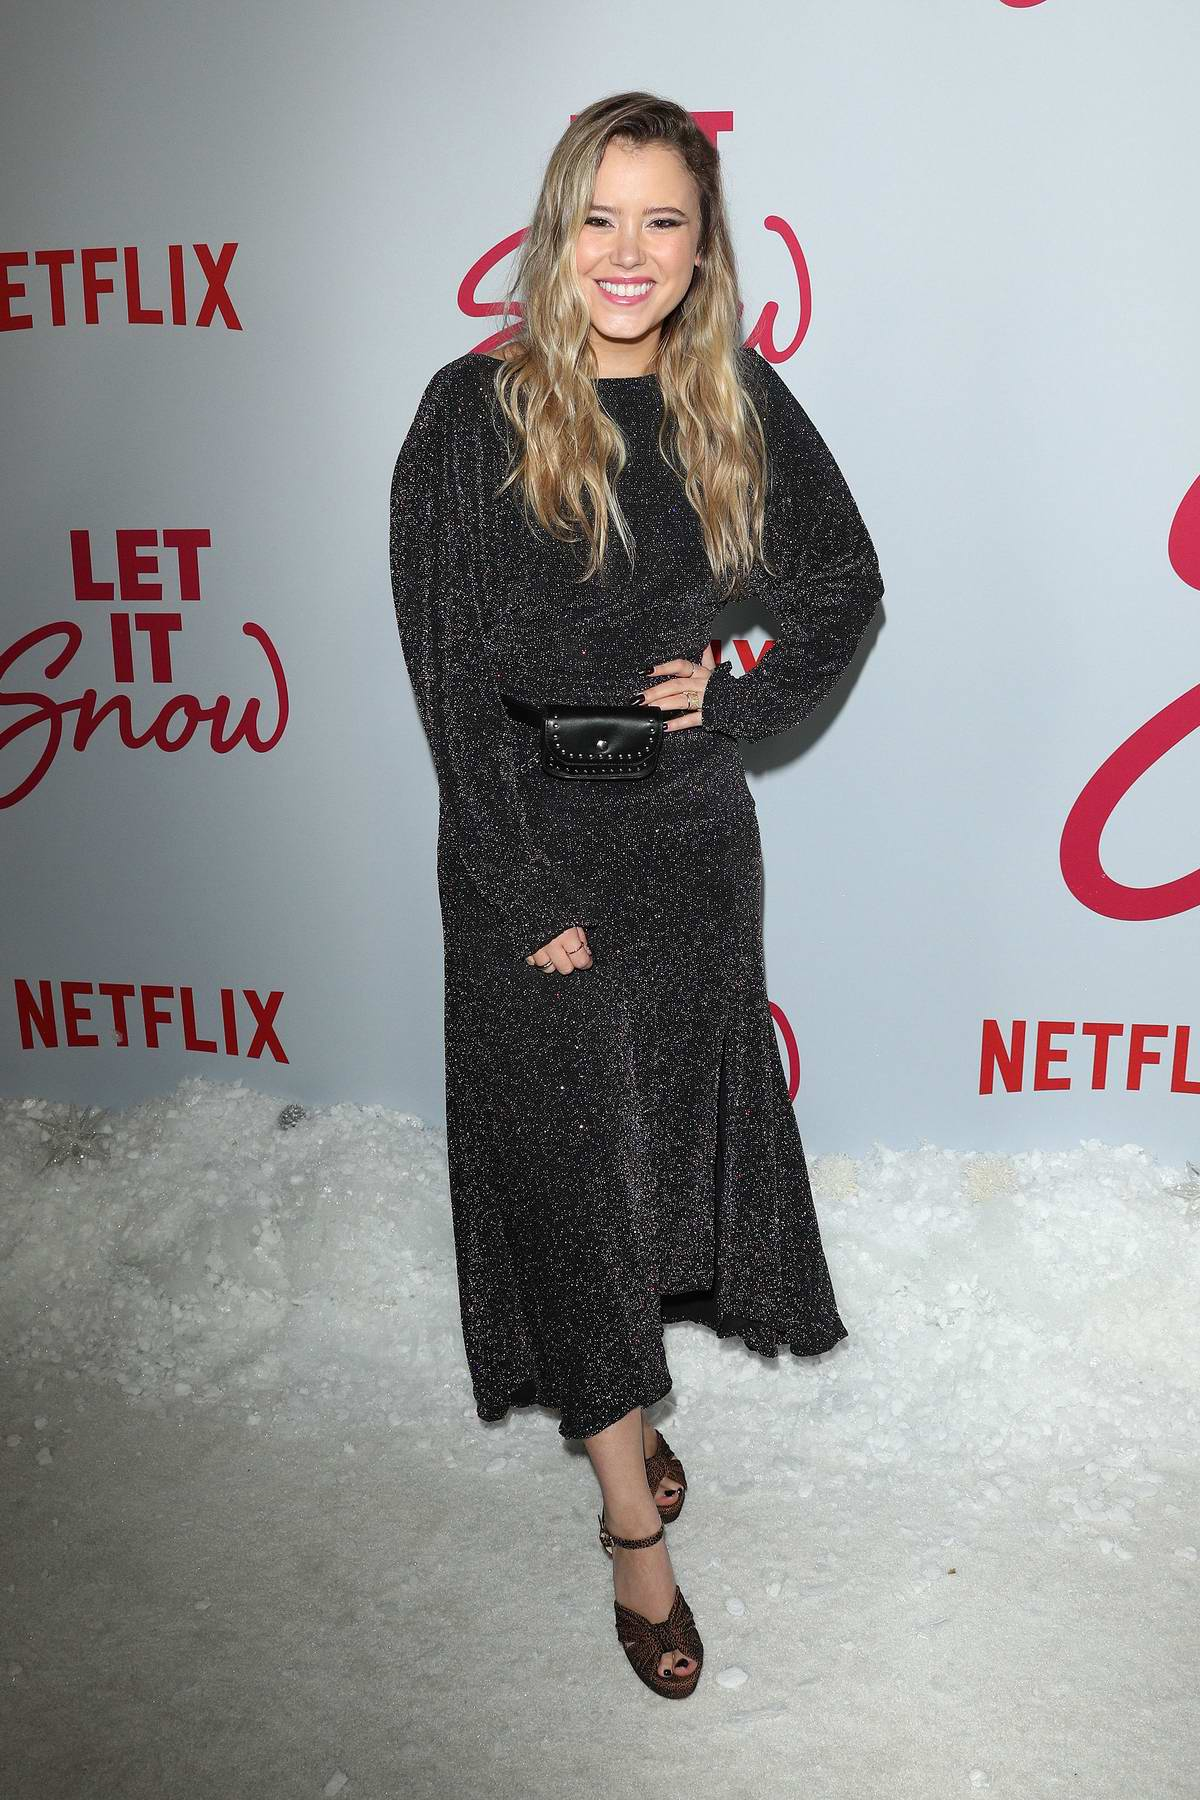 Taylor Spreitler attends the Premiere of Netflix's 'Let It Snow' in Los Angeles